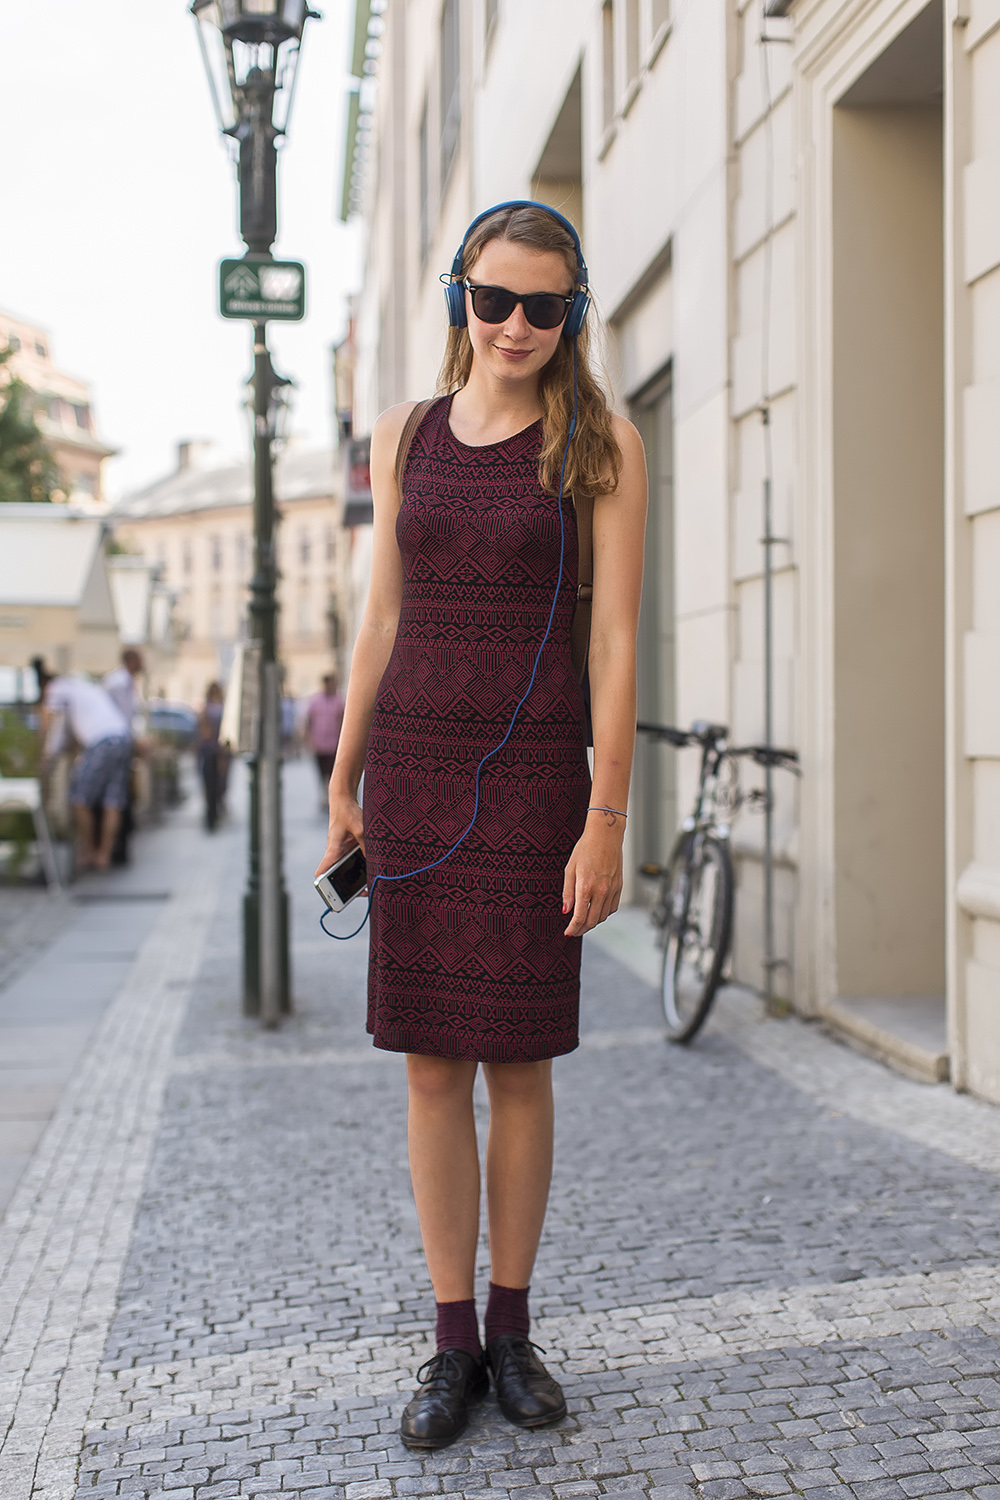 Prague Street Fashion